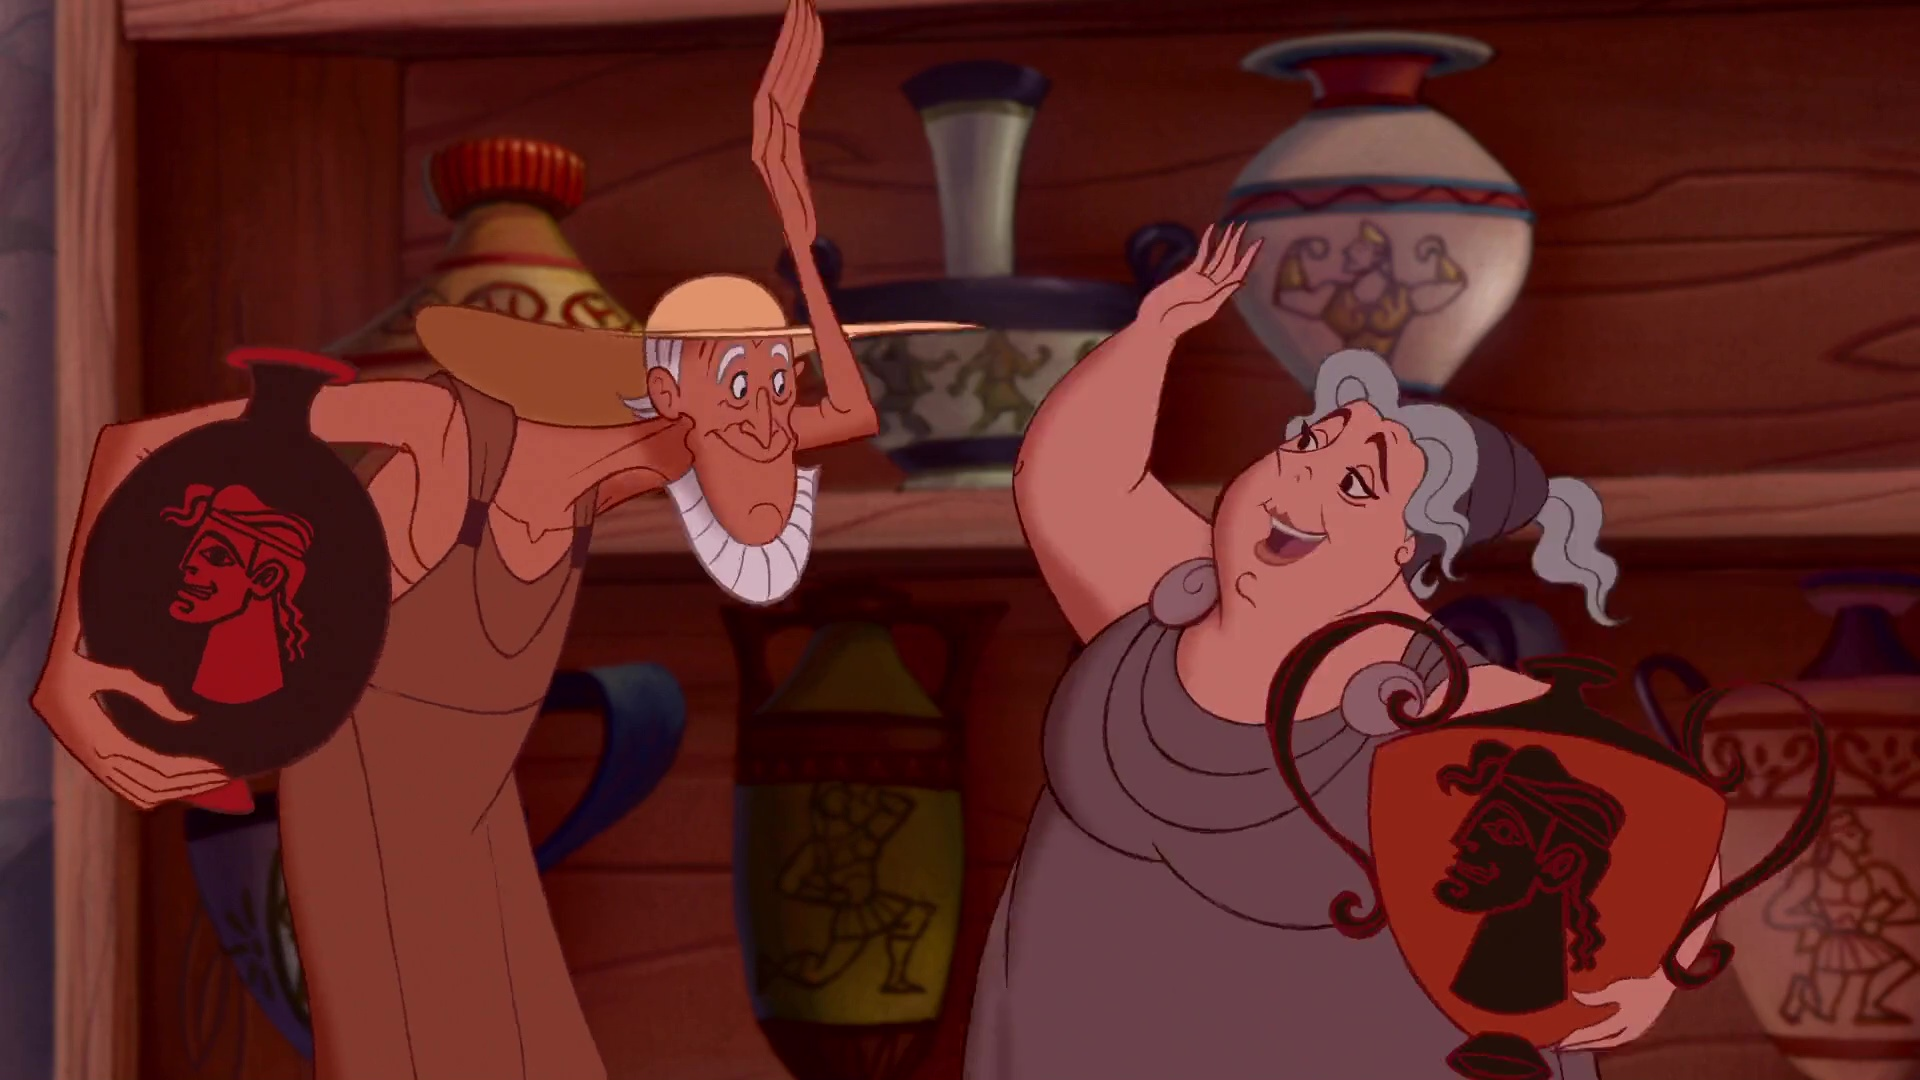 disney-planet.fr||https://disney-planet.fr/amphitryon-et-alcmene-personnages-dans-hercule/